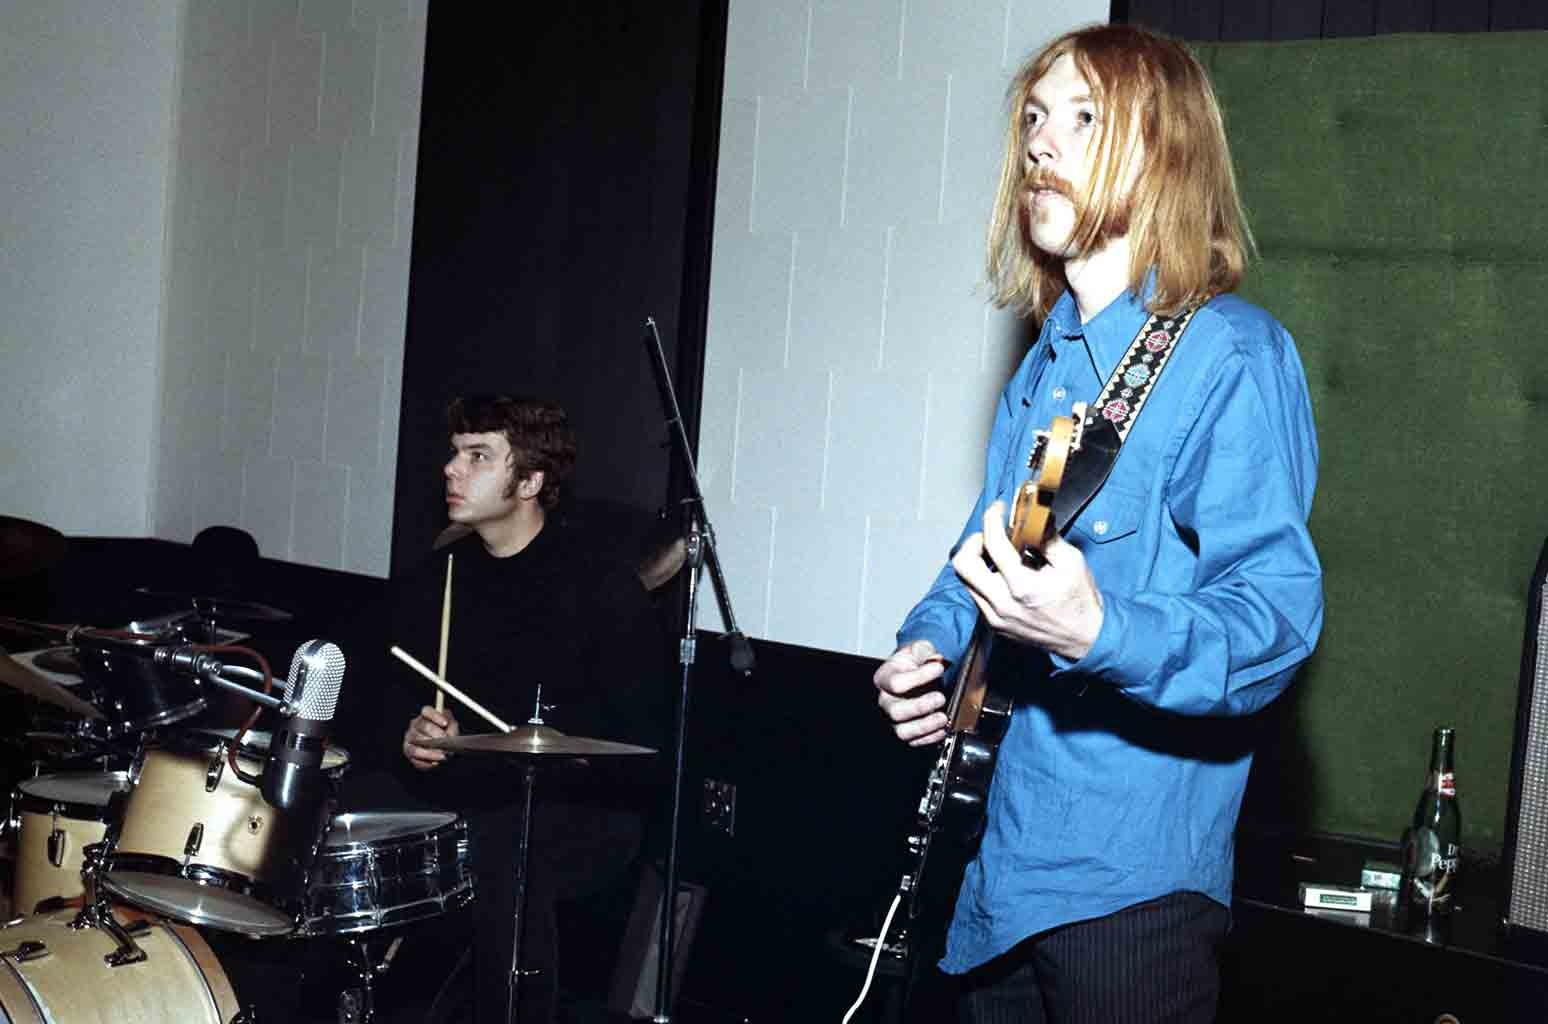 Session guitarist Duane Allman (right) and session drummer Johnny Sandlin rehearse at FAME Studios in 1968 in Muscle Shoals, Alabama.